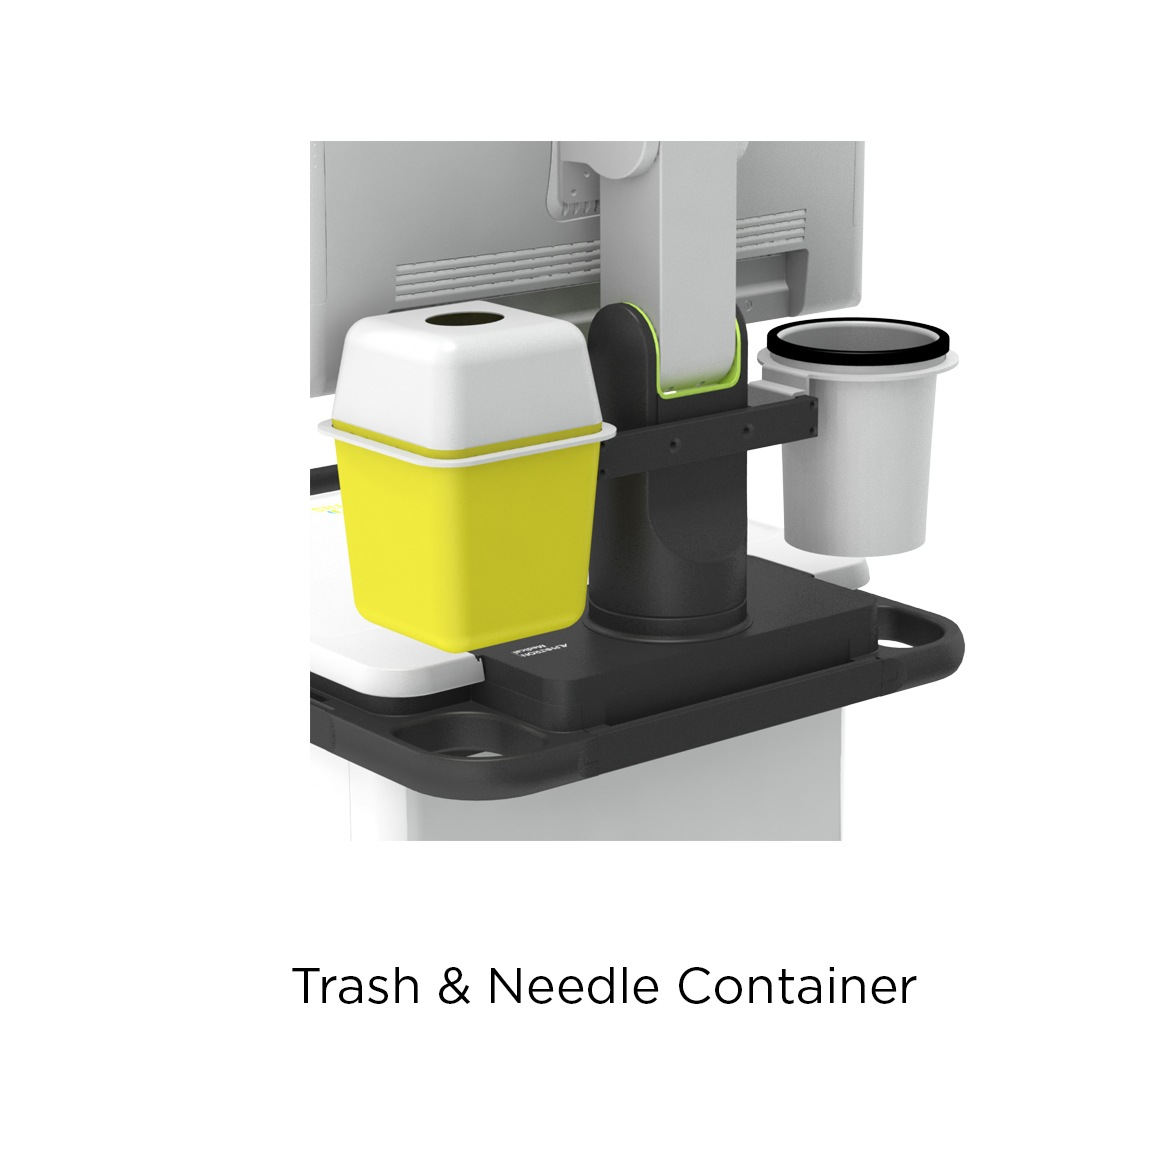 Trash & Needle Container